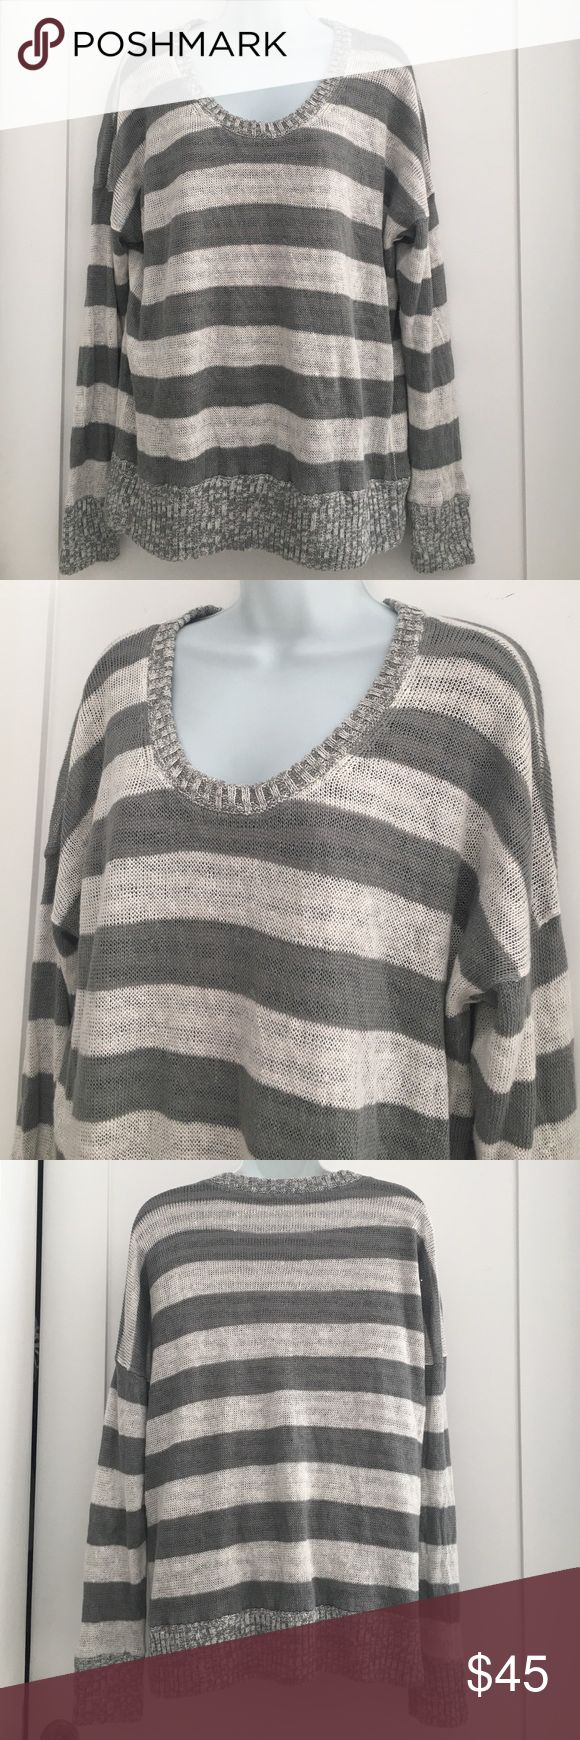 Eileen Fisher Stripped Gray White Sweater size L Preowned Eileen Fisher Stripped Gray White Sweater size L. Signs of loving wear. Lined with a T shirt material inside. Very cozy. Please look at pictures for better reference. Happy shopping!! Eileen Fisher Sweaters V-Necks